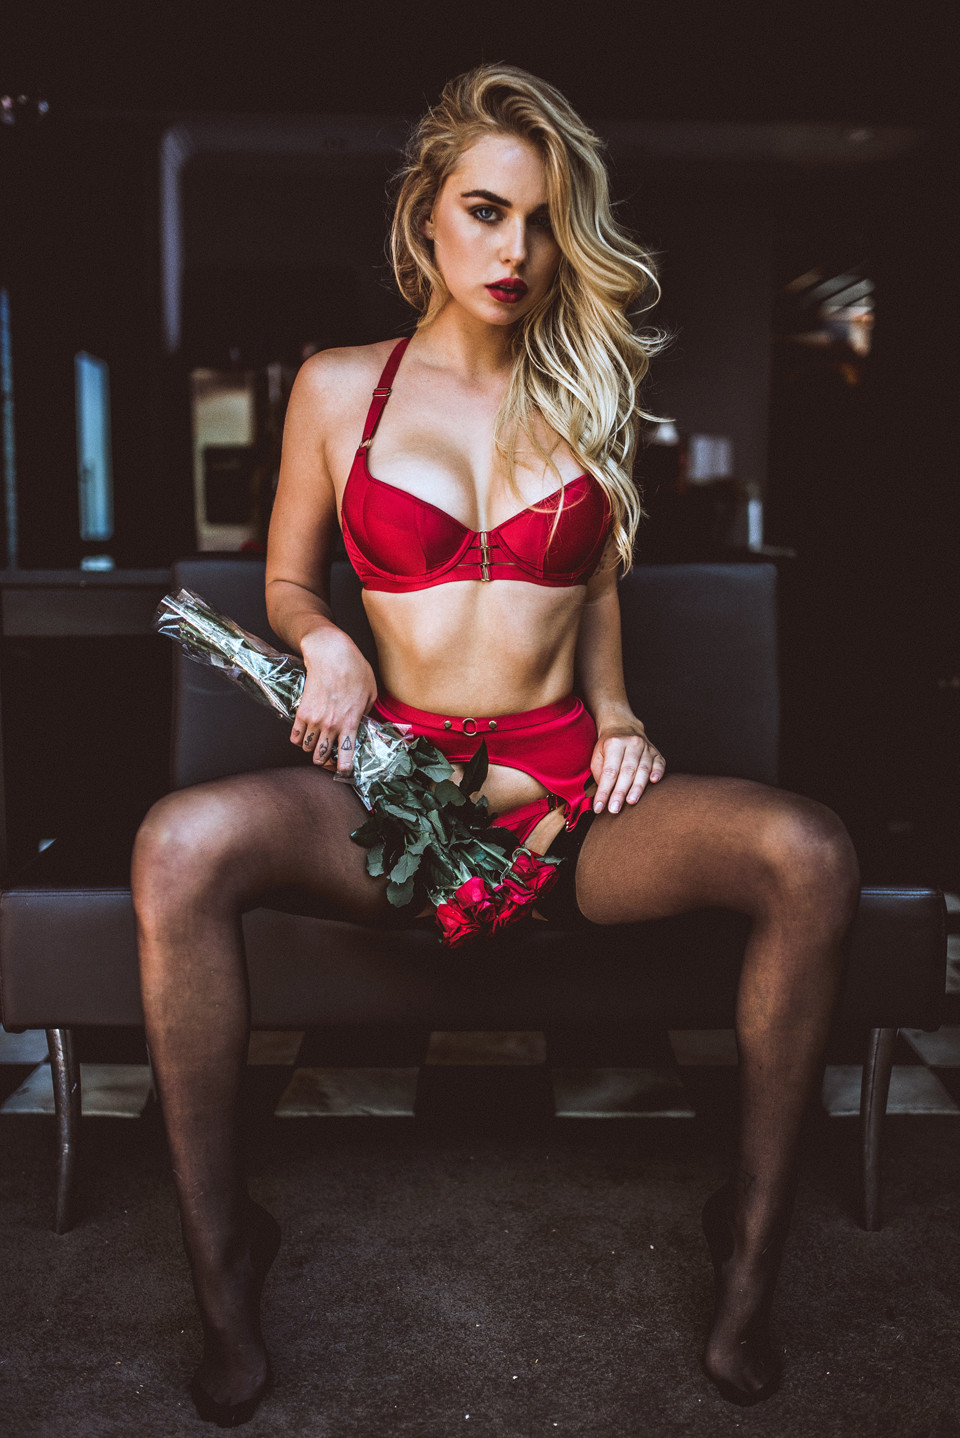 paige-valentines-yume-3